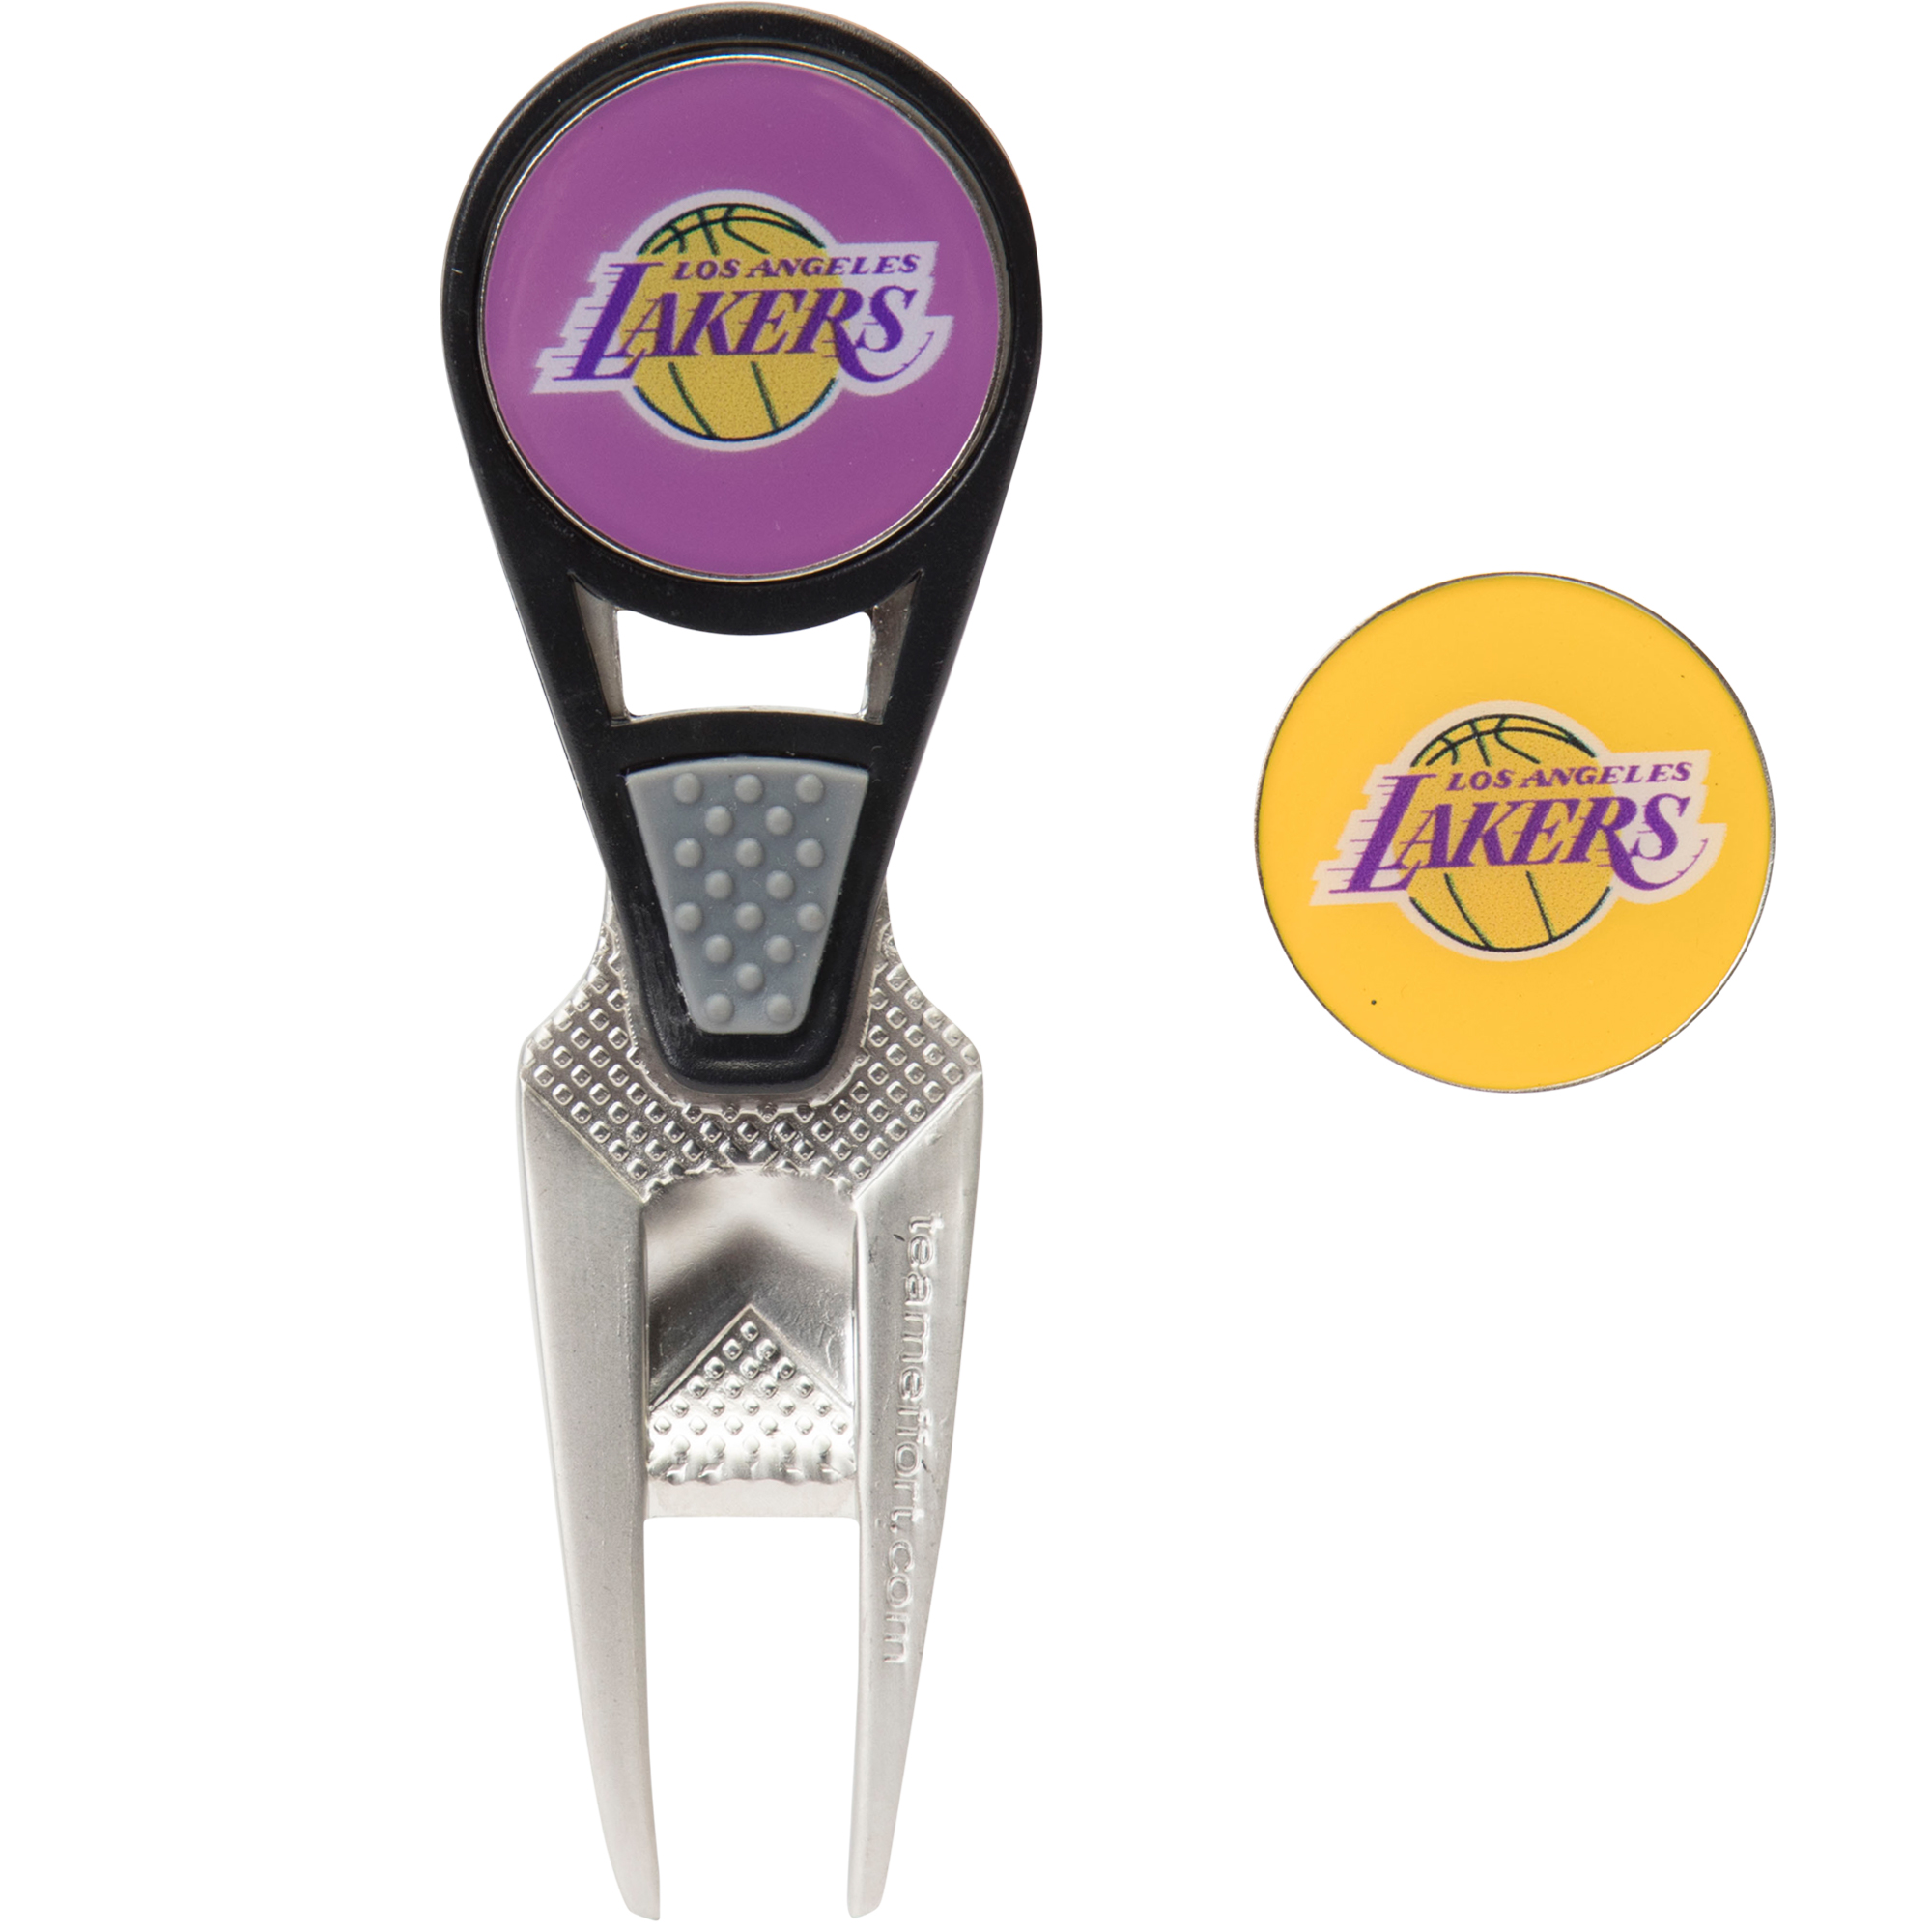 Los Angeles Lakers CVX Repair Tool & Ball Markers Set - No Size